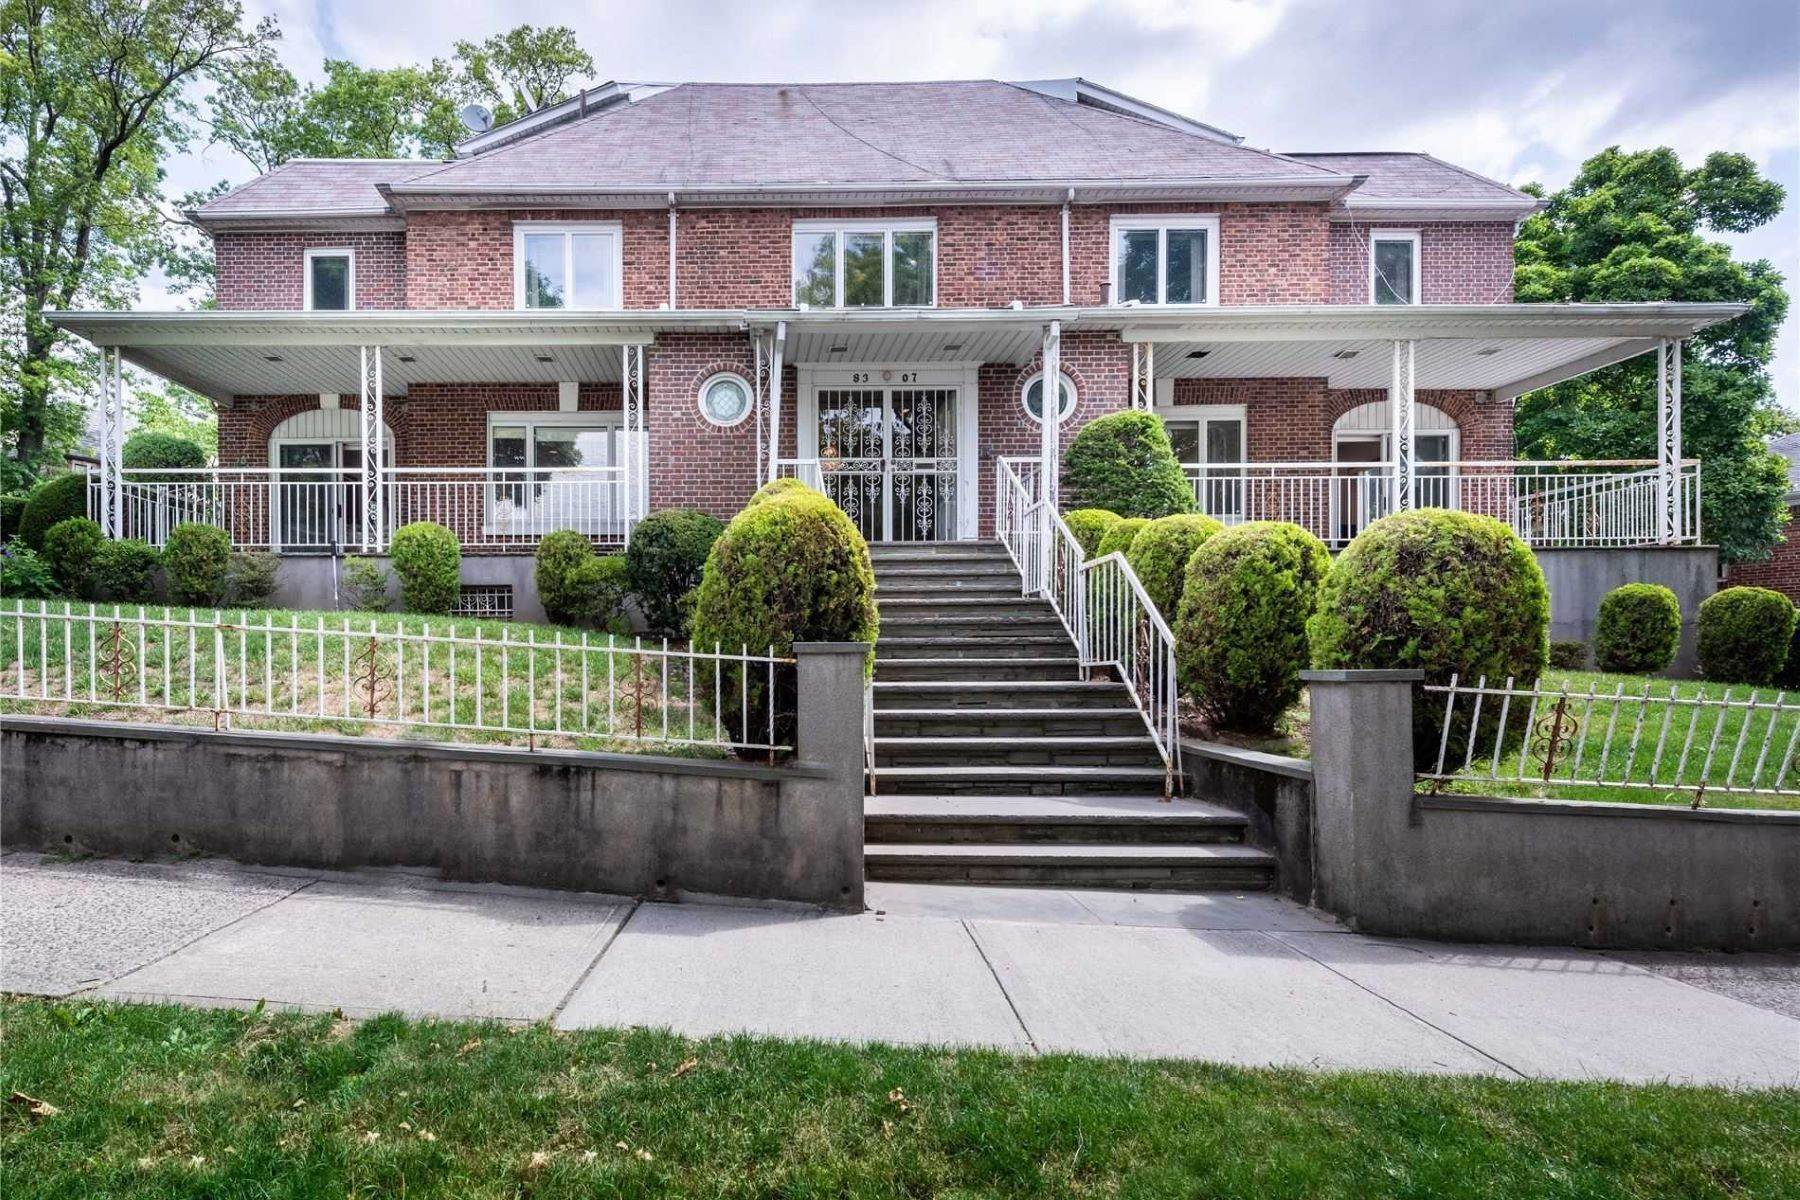 Single Family Homes for Sale at 83-07 Abingdon Rd, Kew Gardens, Ny, 11415 83-07 Abingdon Road Kew Gardens, New York 11415 United States